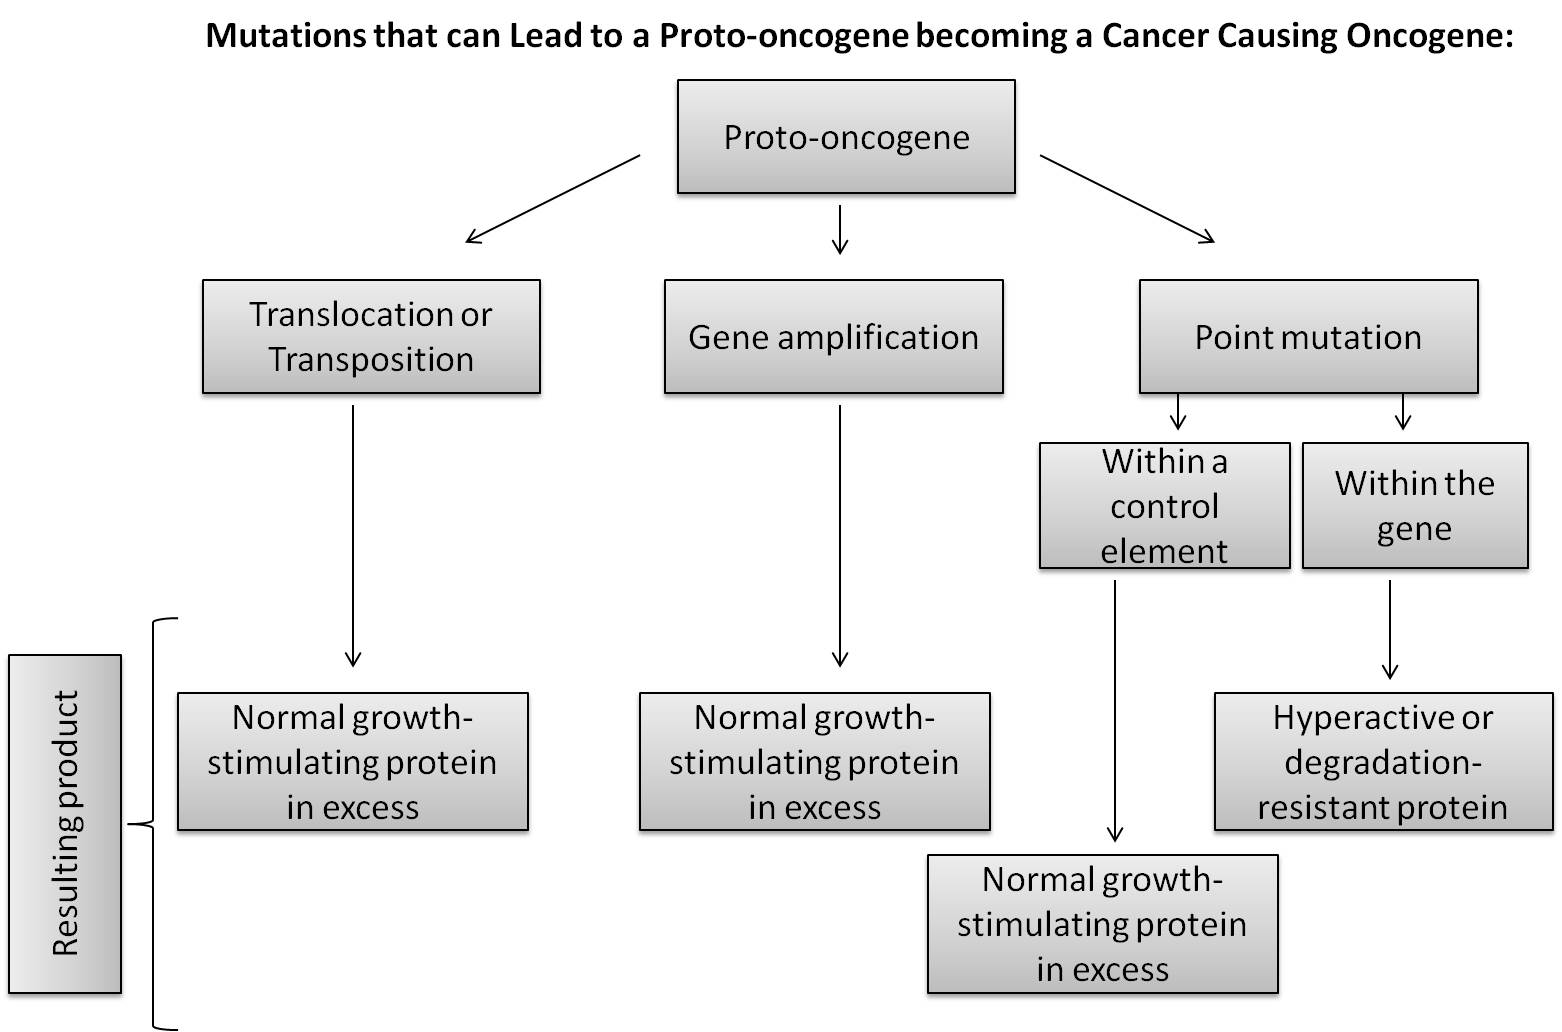 All Unit Conversion Chart: Conversion of proto-oncogene flow chart.jpg - Wikimedia Commons,Chart